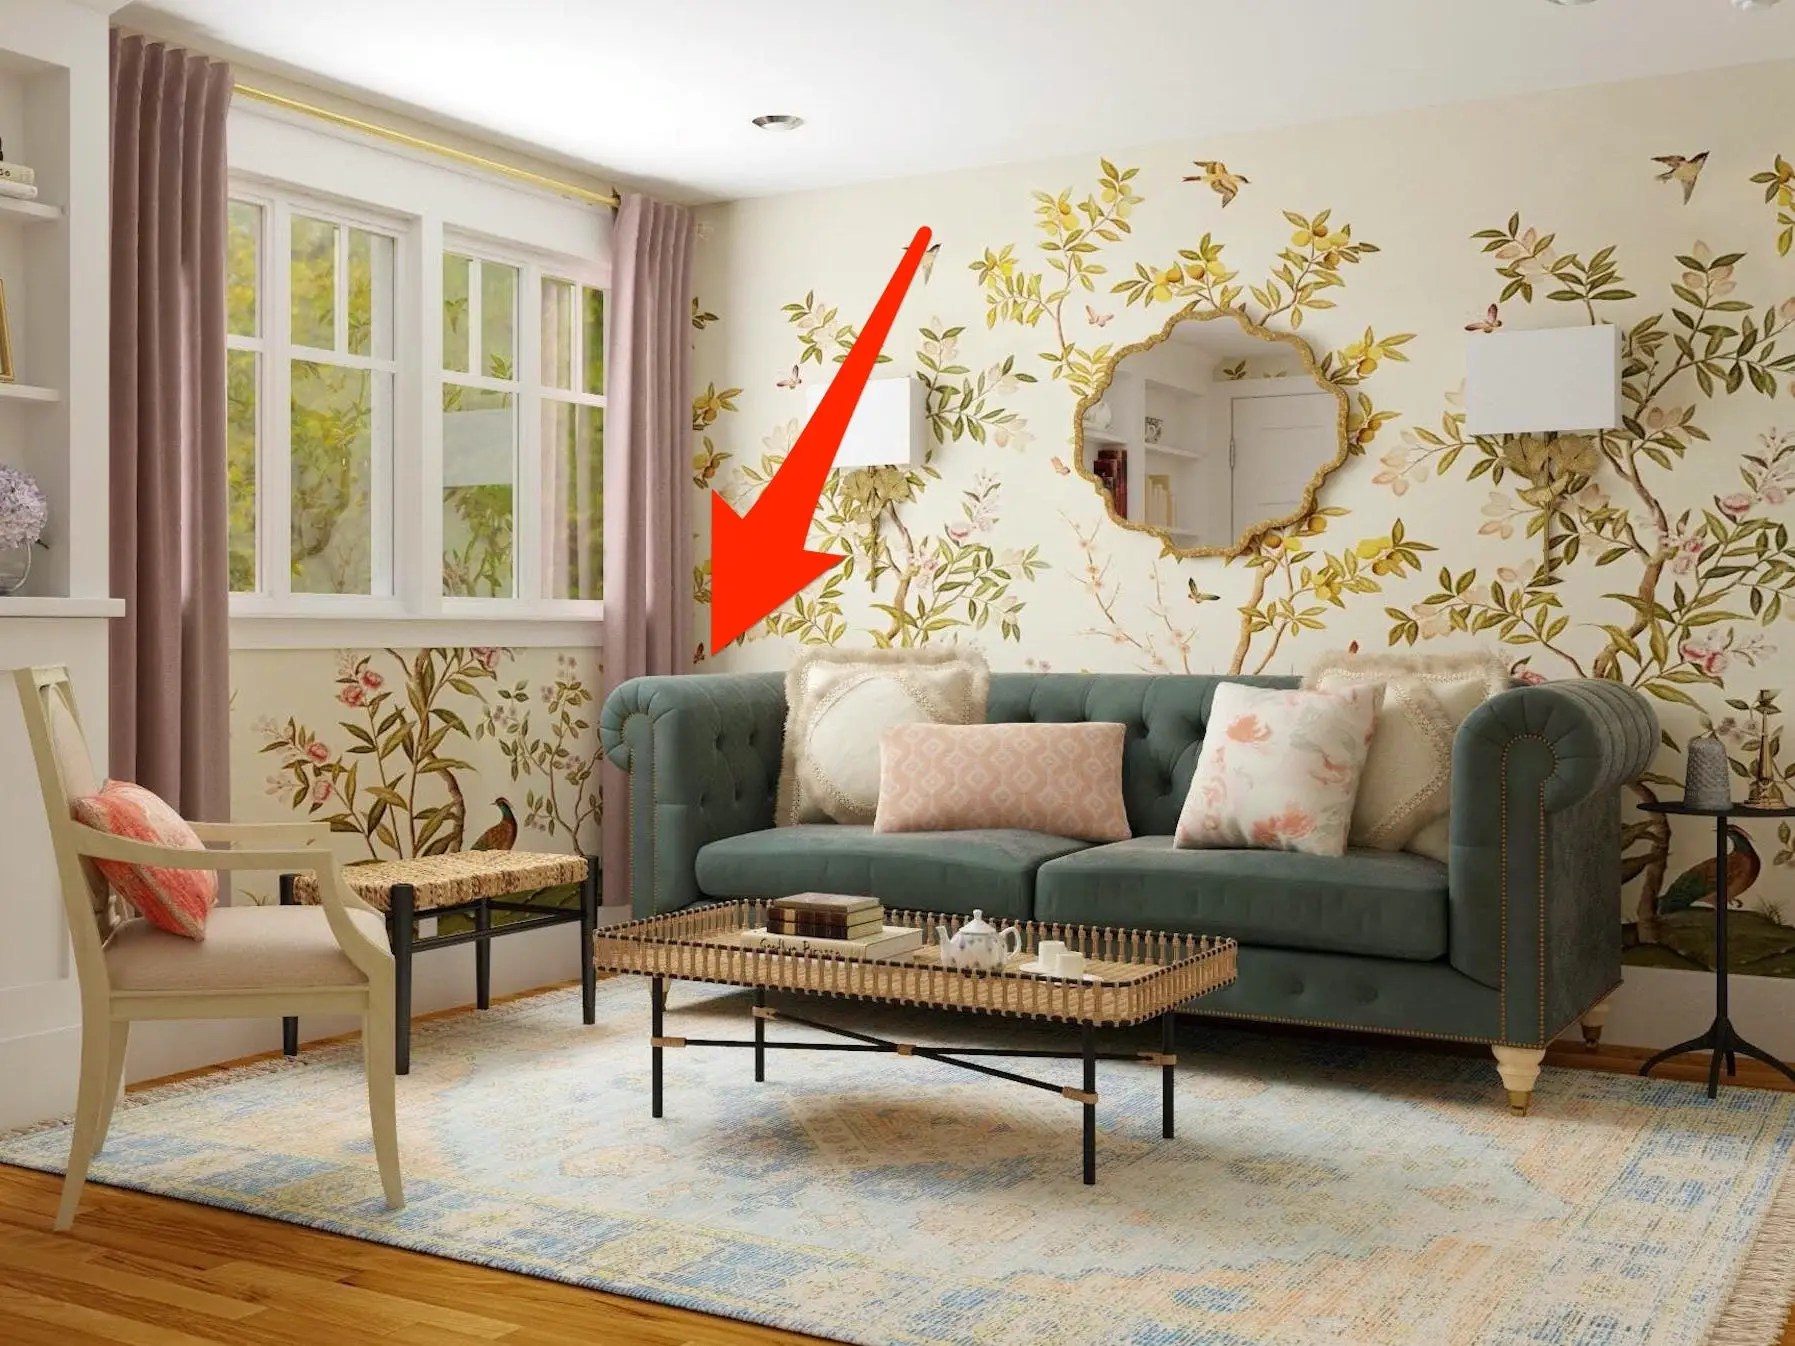 The home decor trends that will be popular in 2021, according to interior designers   Business ...